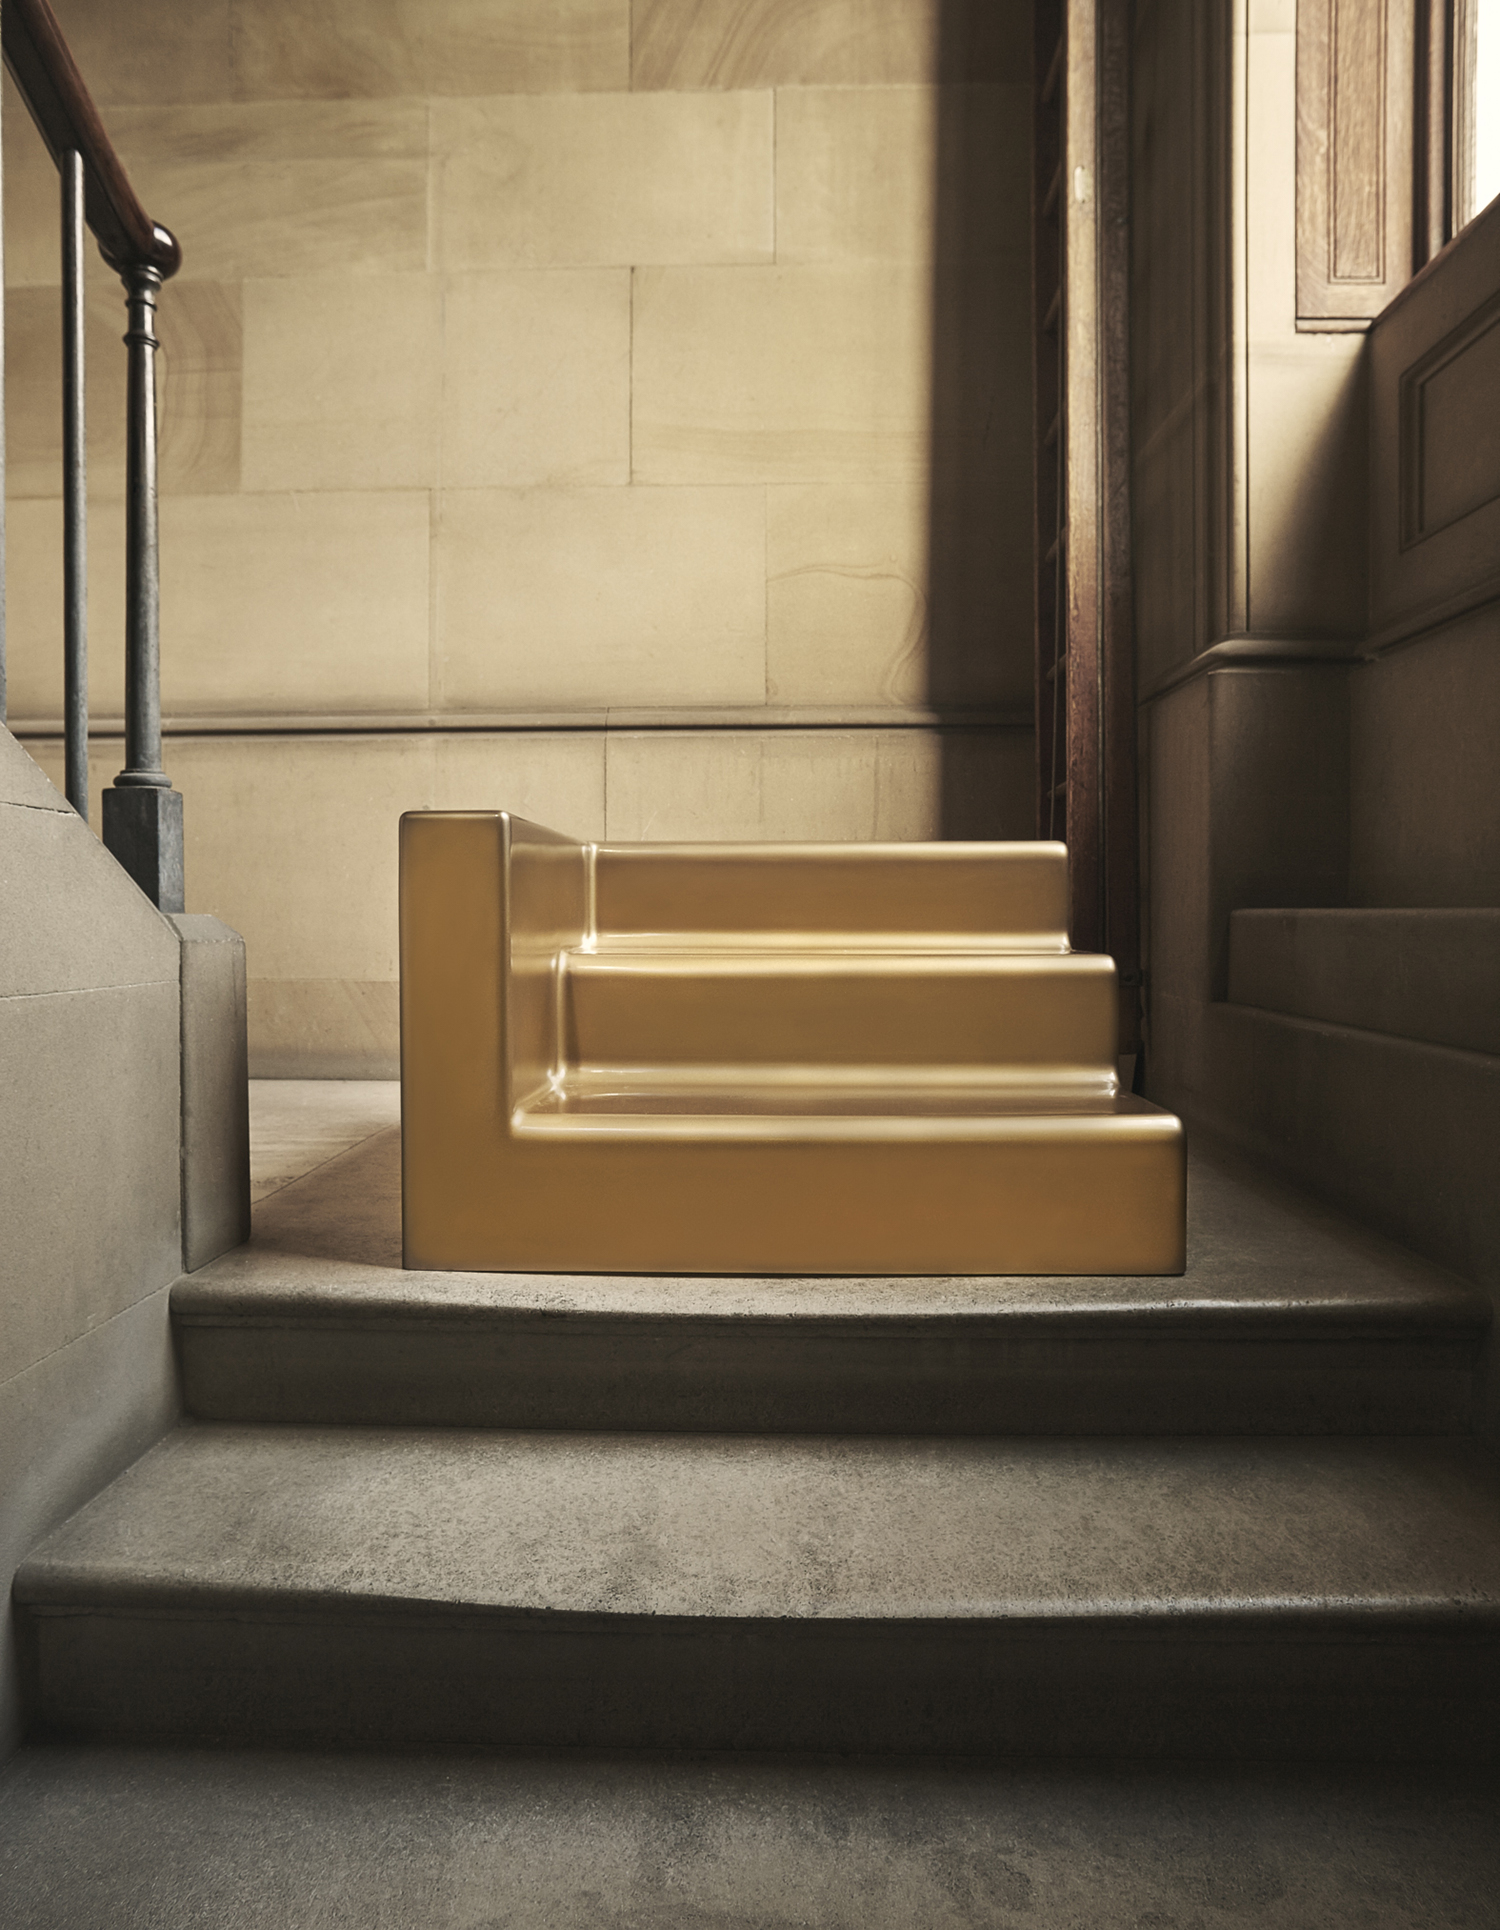 Fragment of a Staircase_Chatsworth_1500px_180dpi.jpg